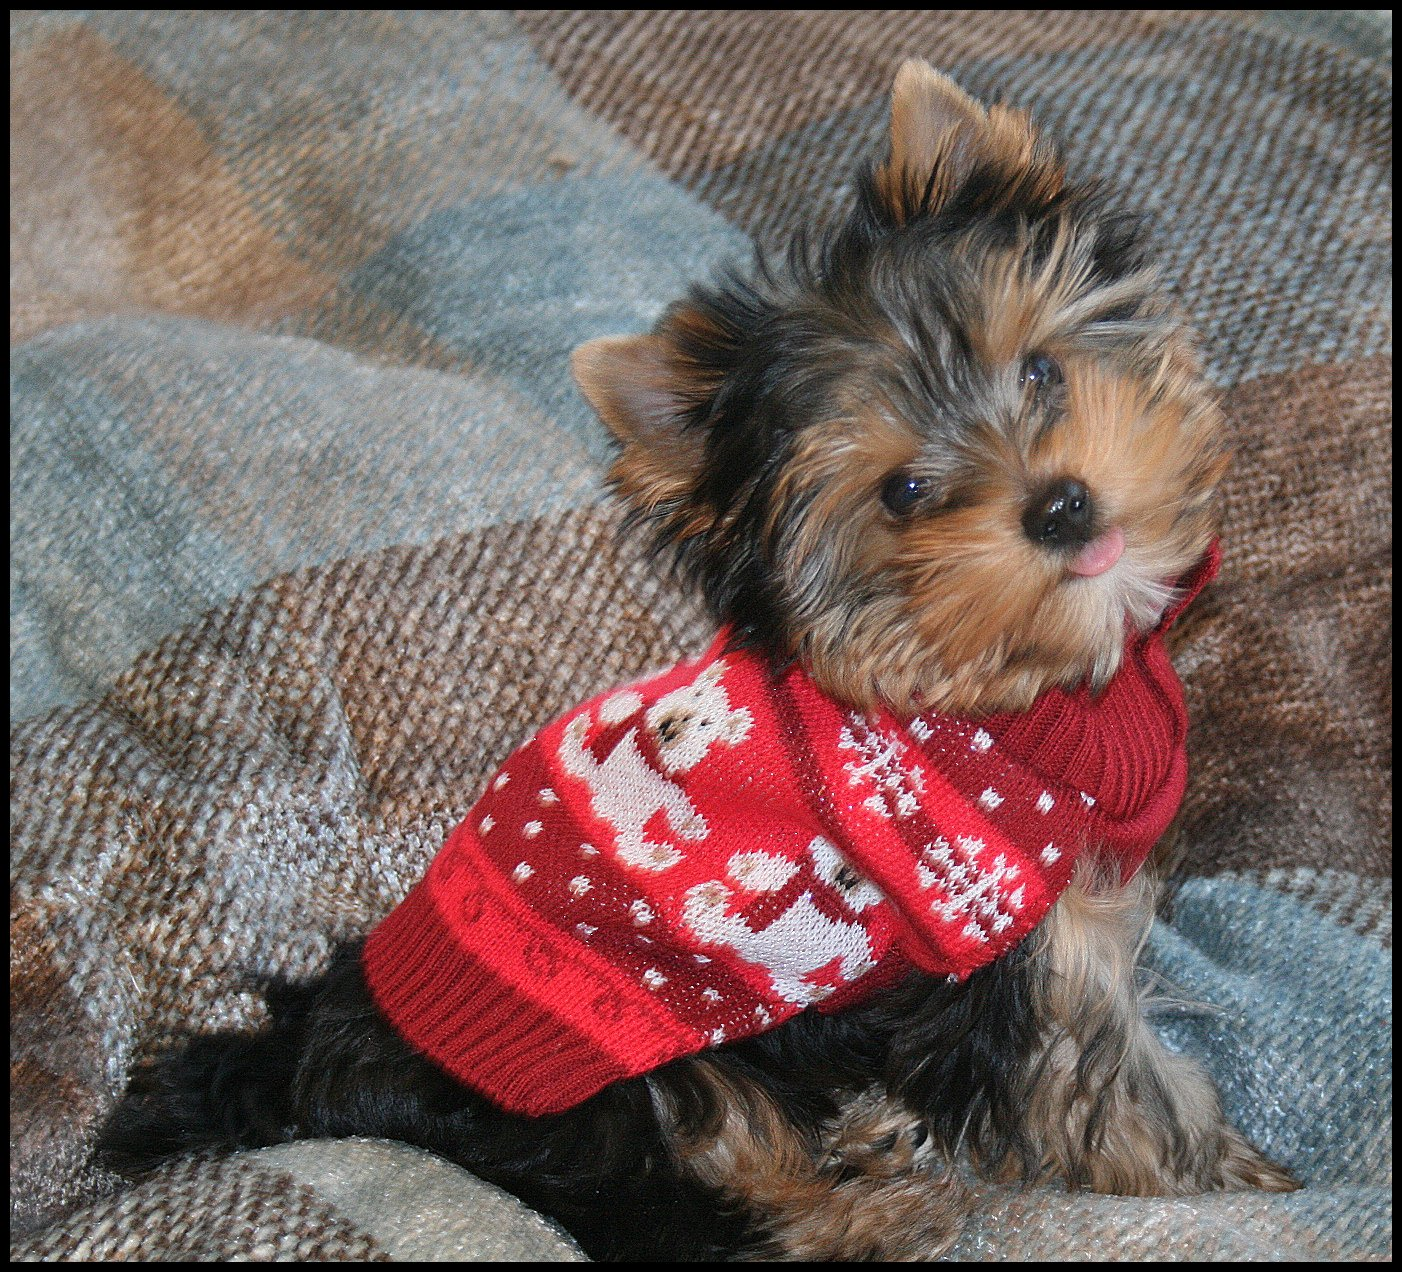 Yorkie Poo - Puppies, Rescue, Pictures, Information ...  |Yorkie Poodle